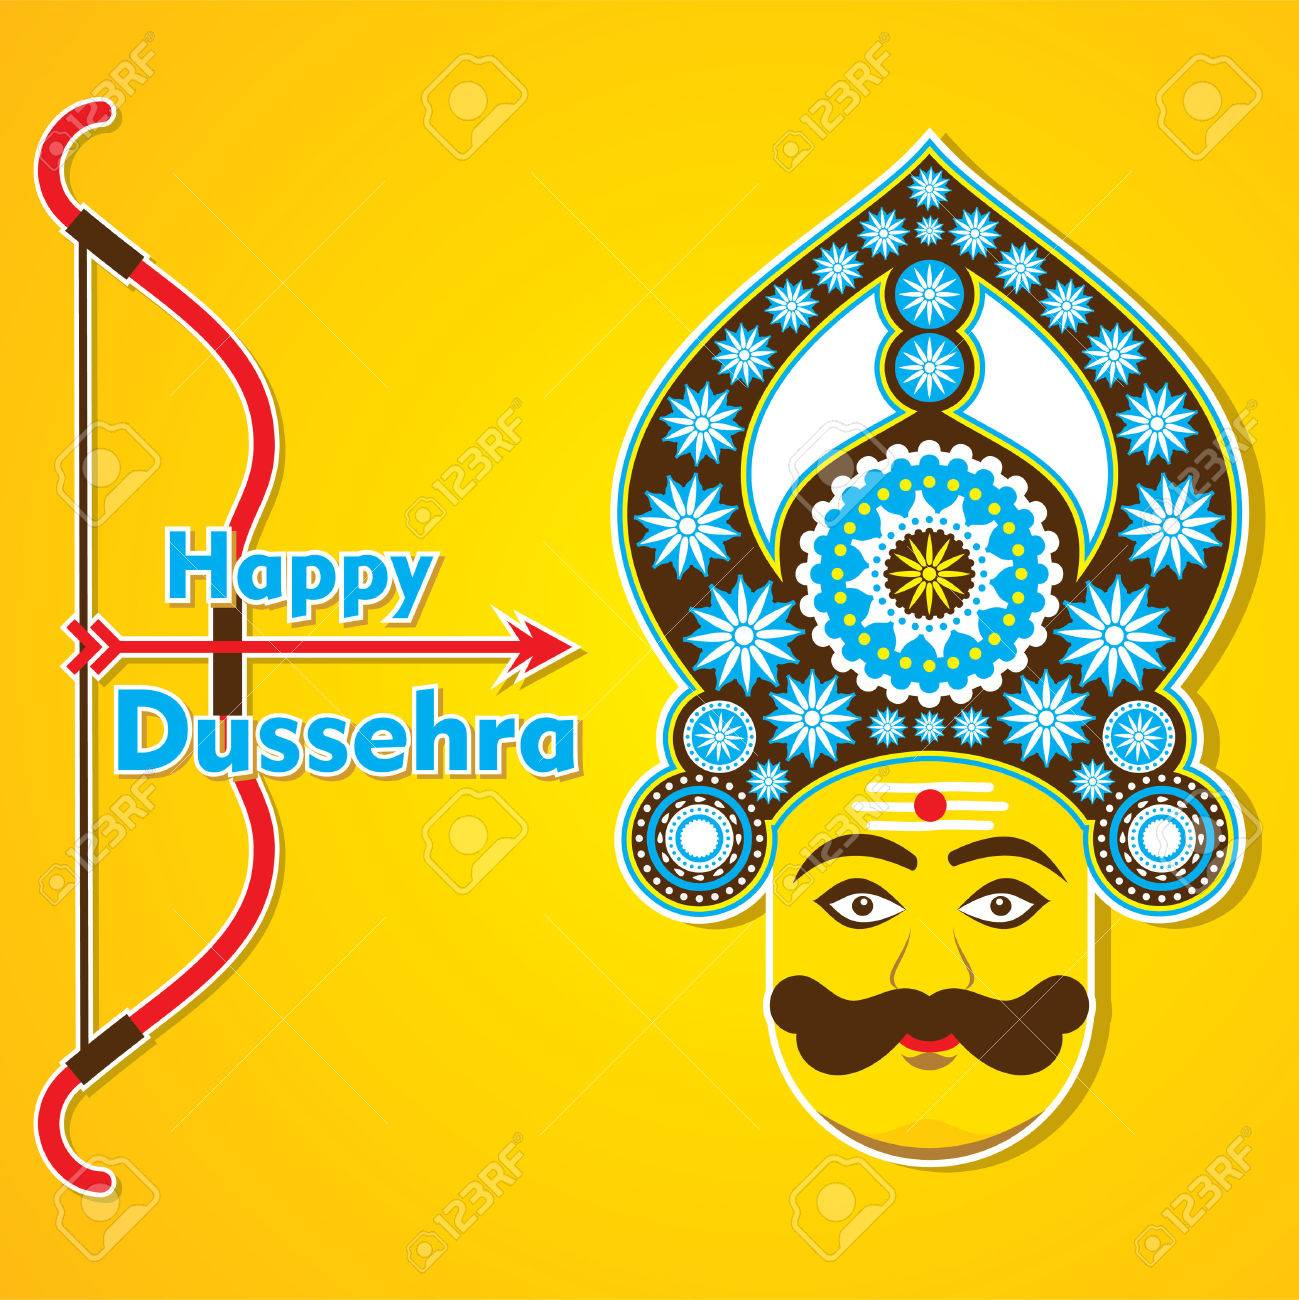 Happy dussehra greeting card design vector royalty free cliparts happy dussehra greeting card design vector stock vector 46135217 m4hsunfo